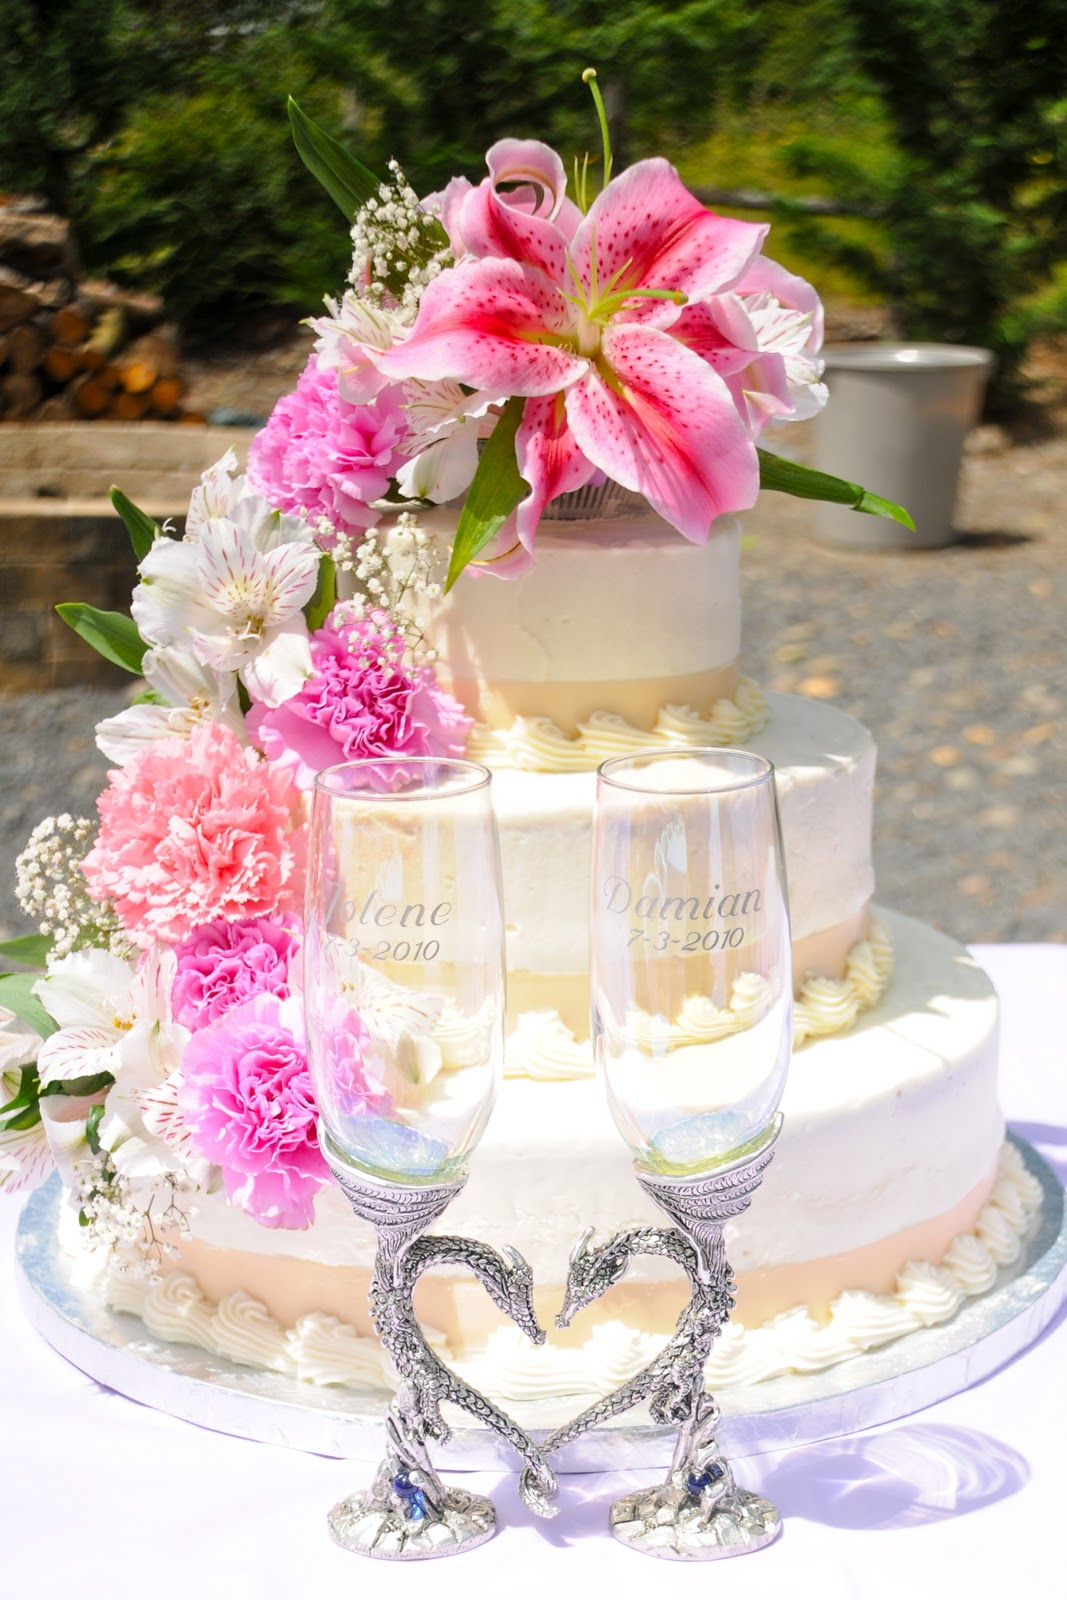 Modern wedding cakes for the holiday: Wedding cake frosting with ...